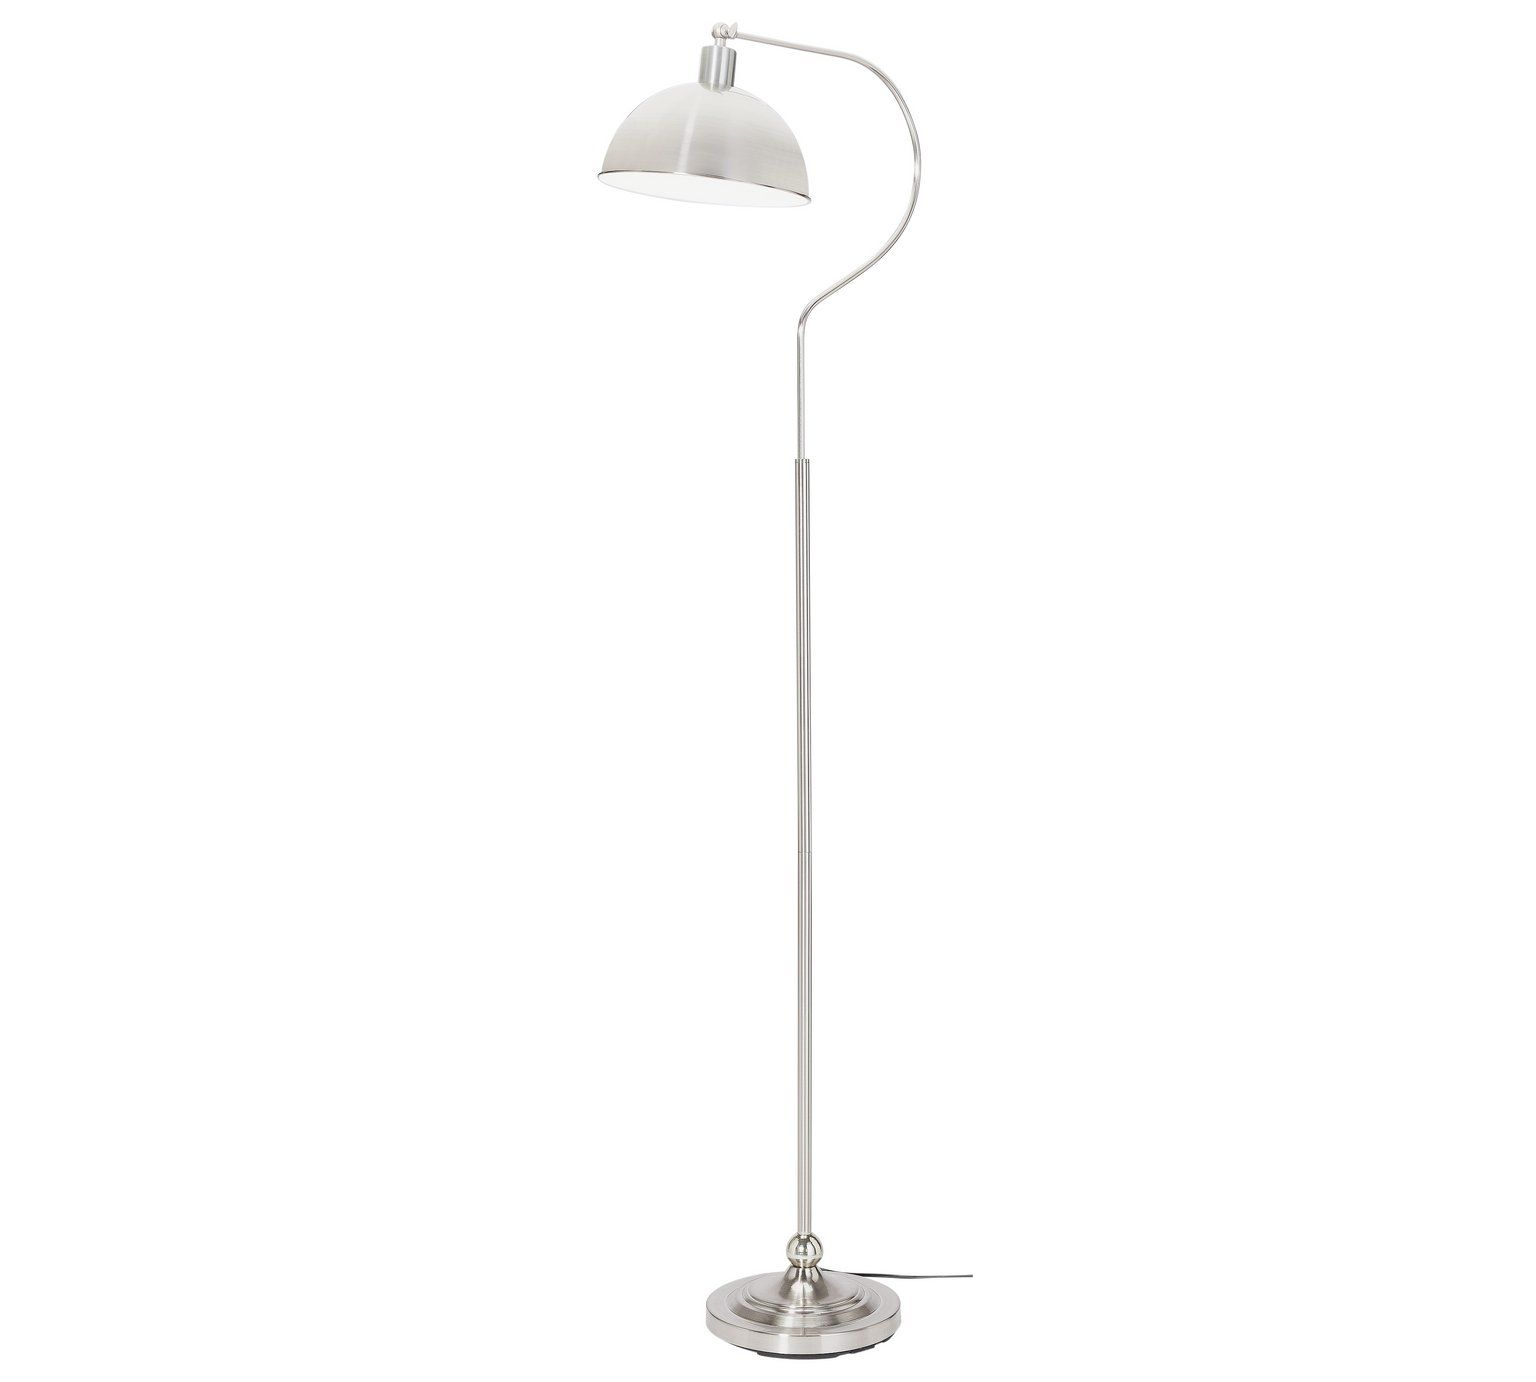 Buy HOME Coral Curved Floor Lamp - Satin Nickel at Argos.co.uk ...